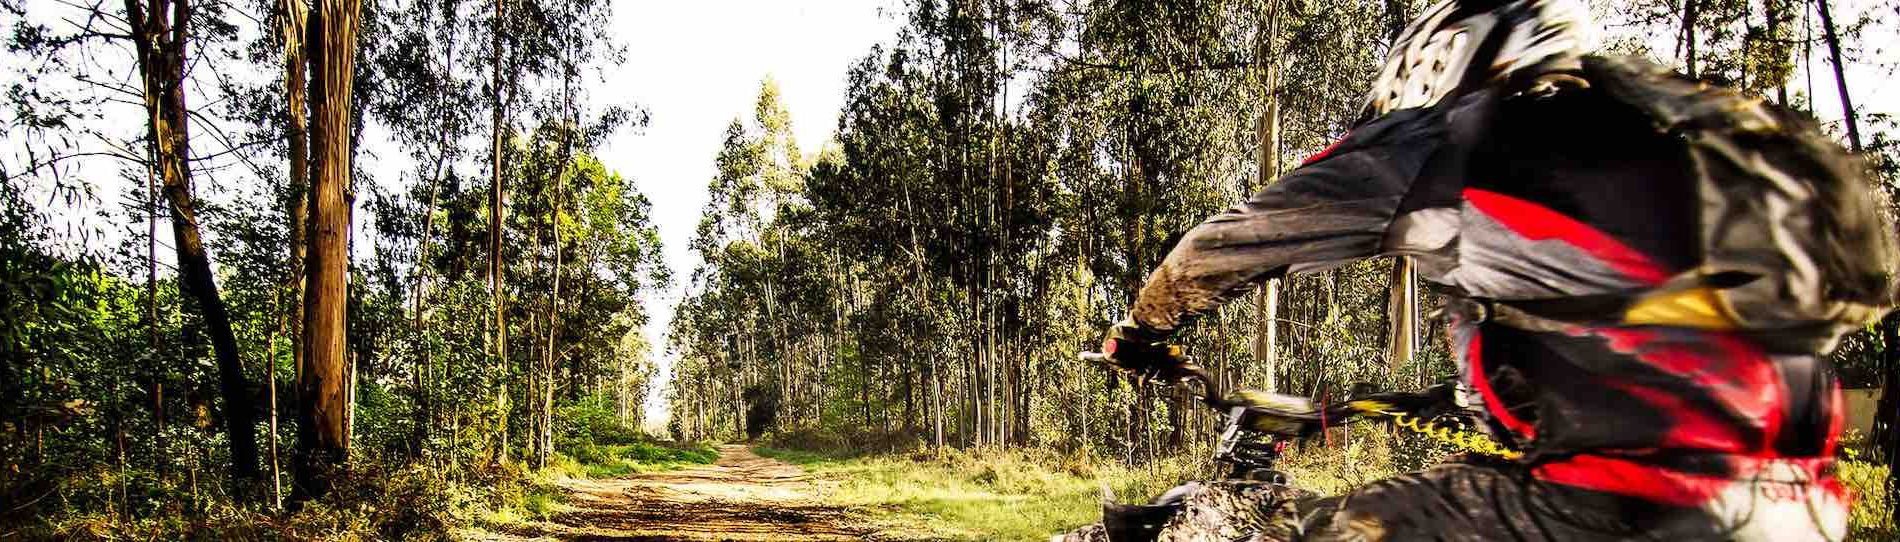 quad bike rider cairns jumping in muddy forest